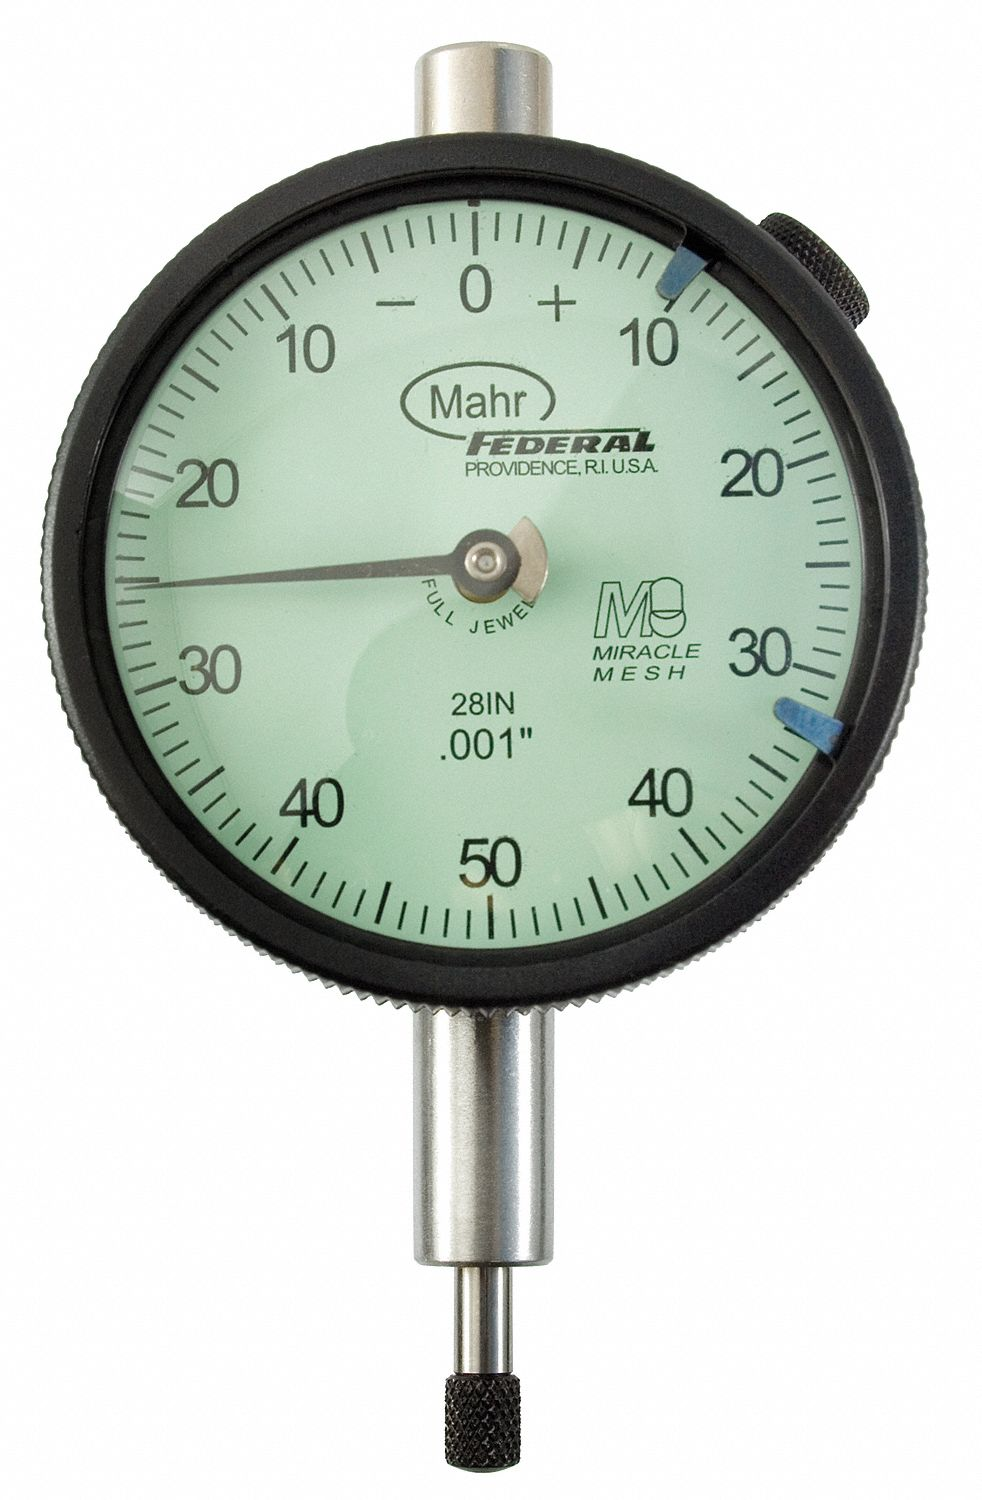 Dial Indicator - Lug Back,  Range 0 in to 0.25 in,  Back Type Lug,  Reading Balanced